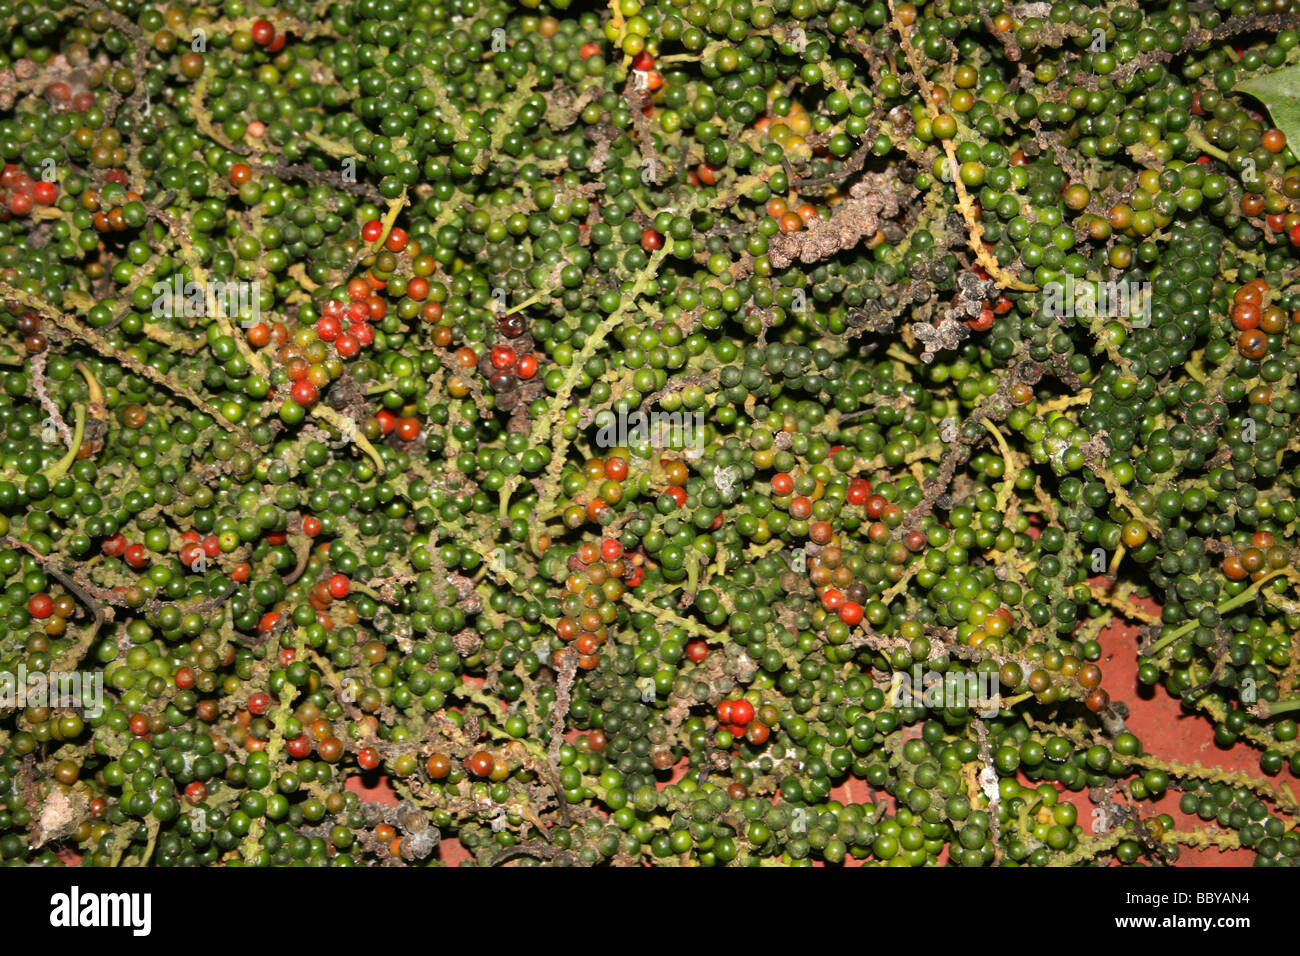 Drying Pepper Piper nigrum Berries In A Spice Plantation, Periyar National Park, Kerala, India - Stock Image